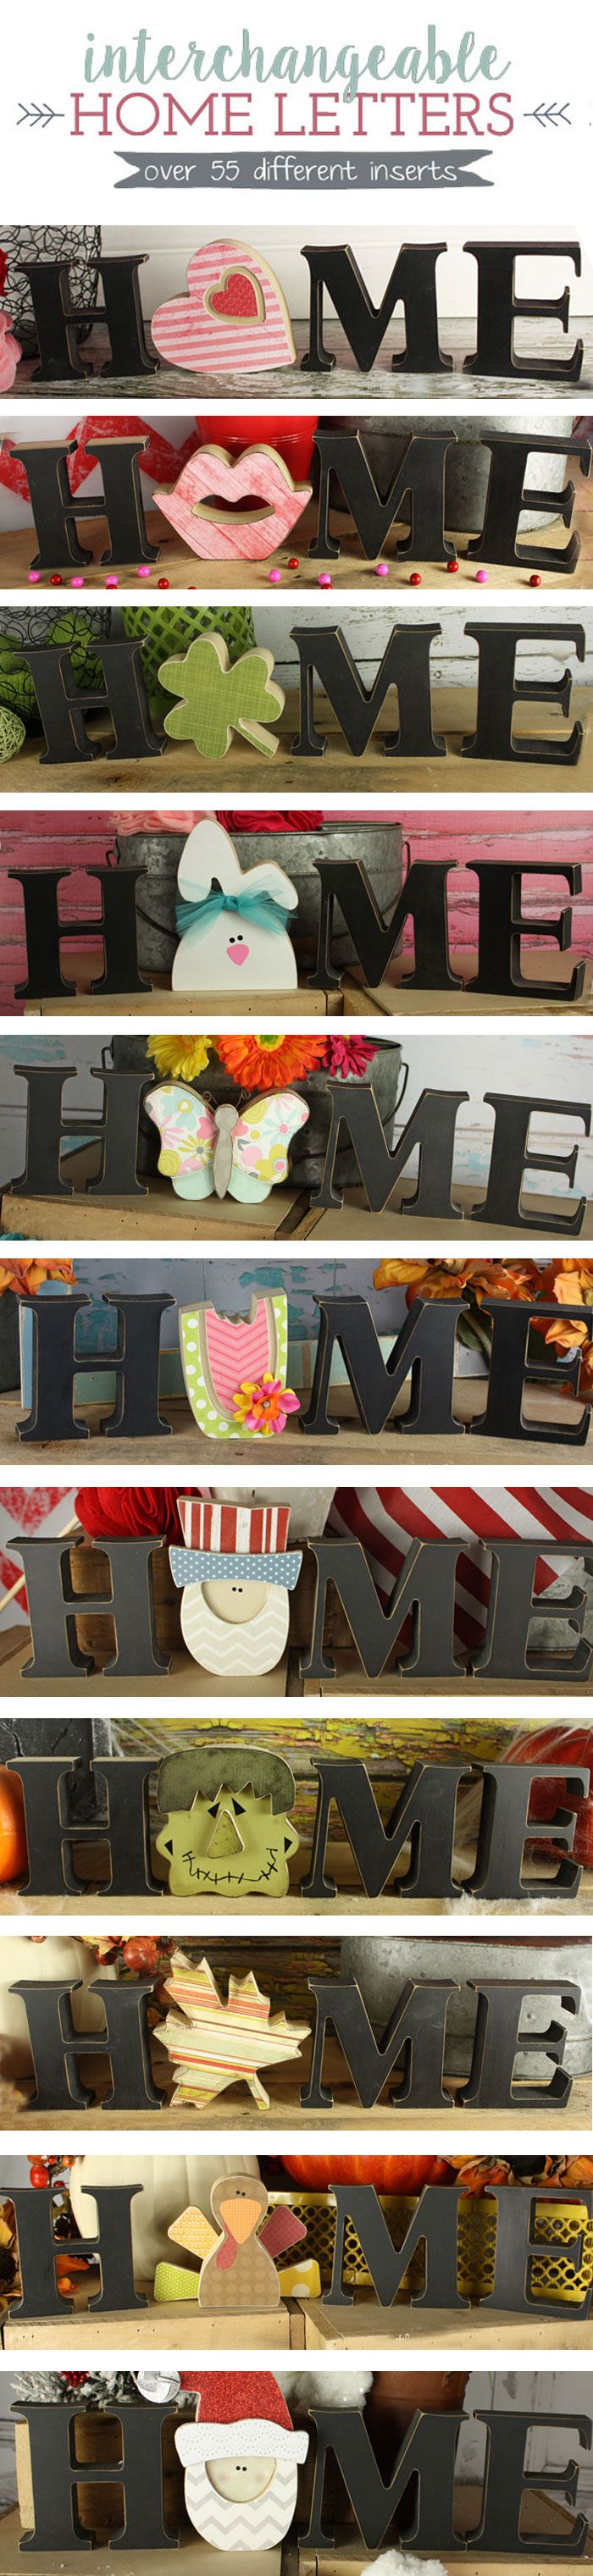 Interchangeable Home Letters.